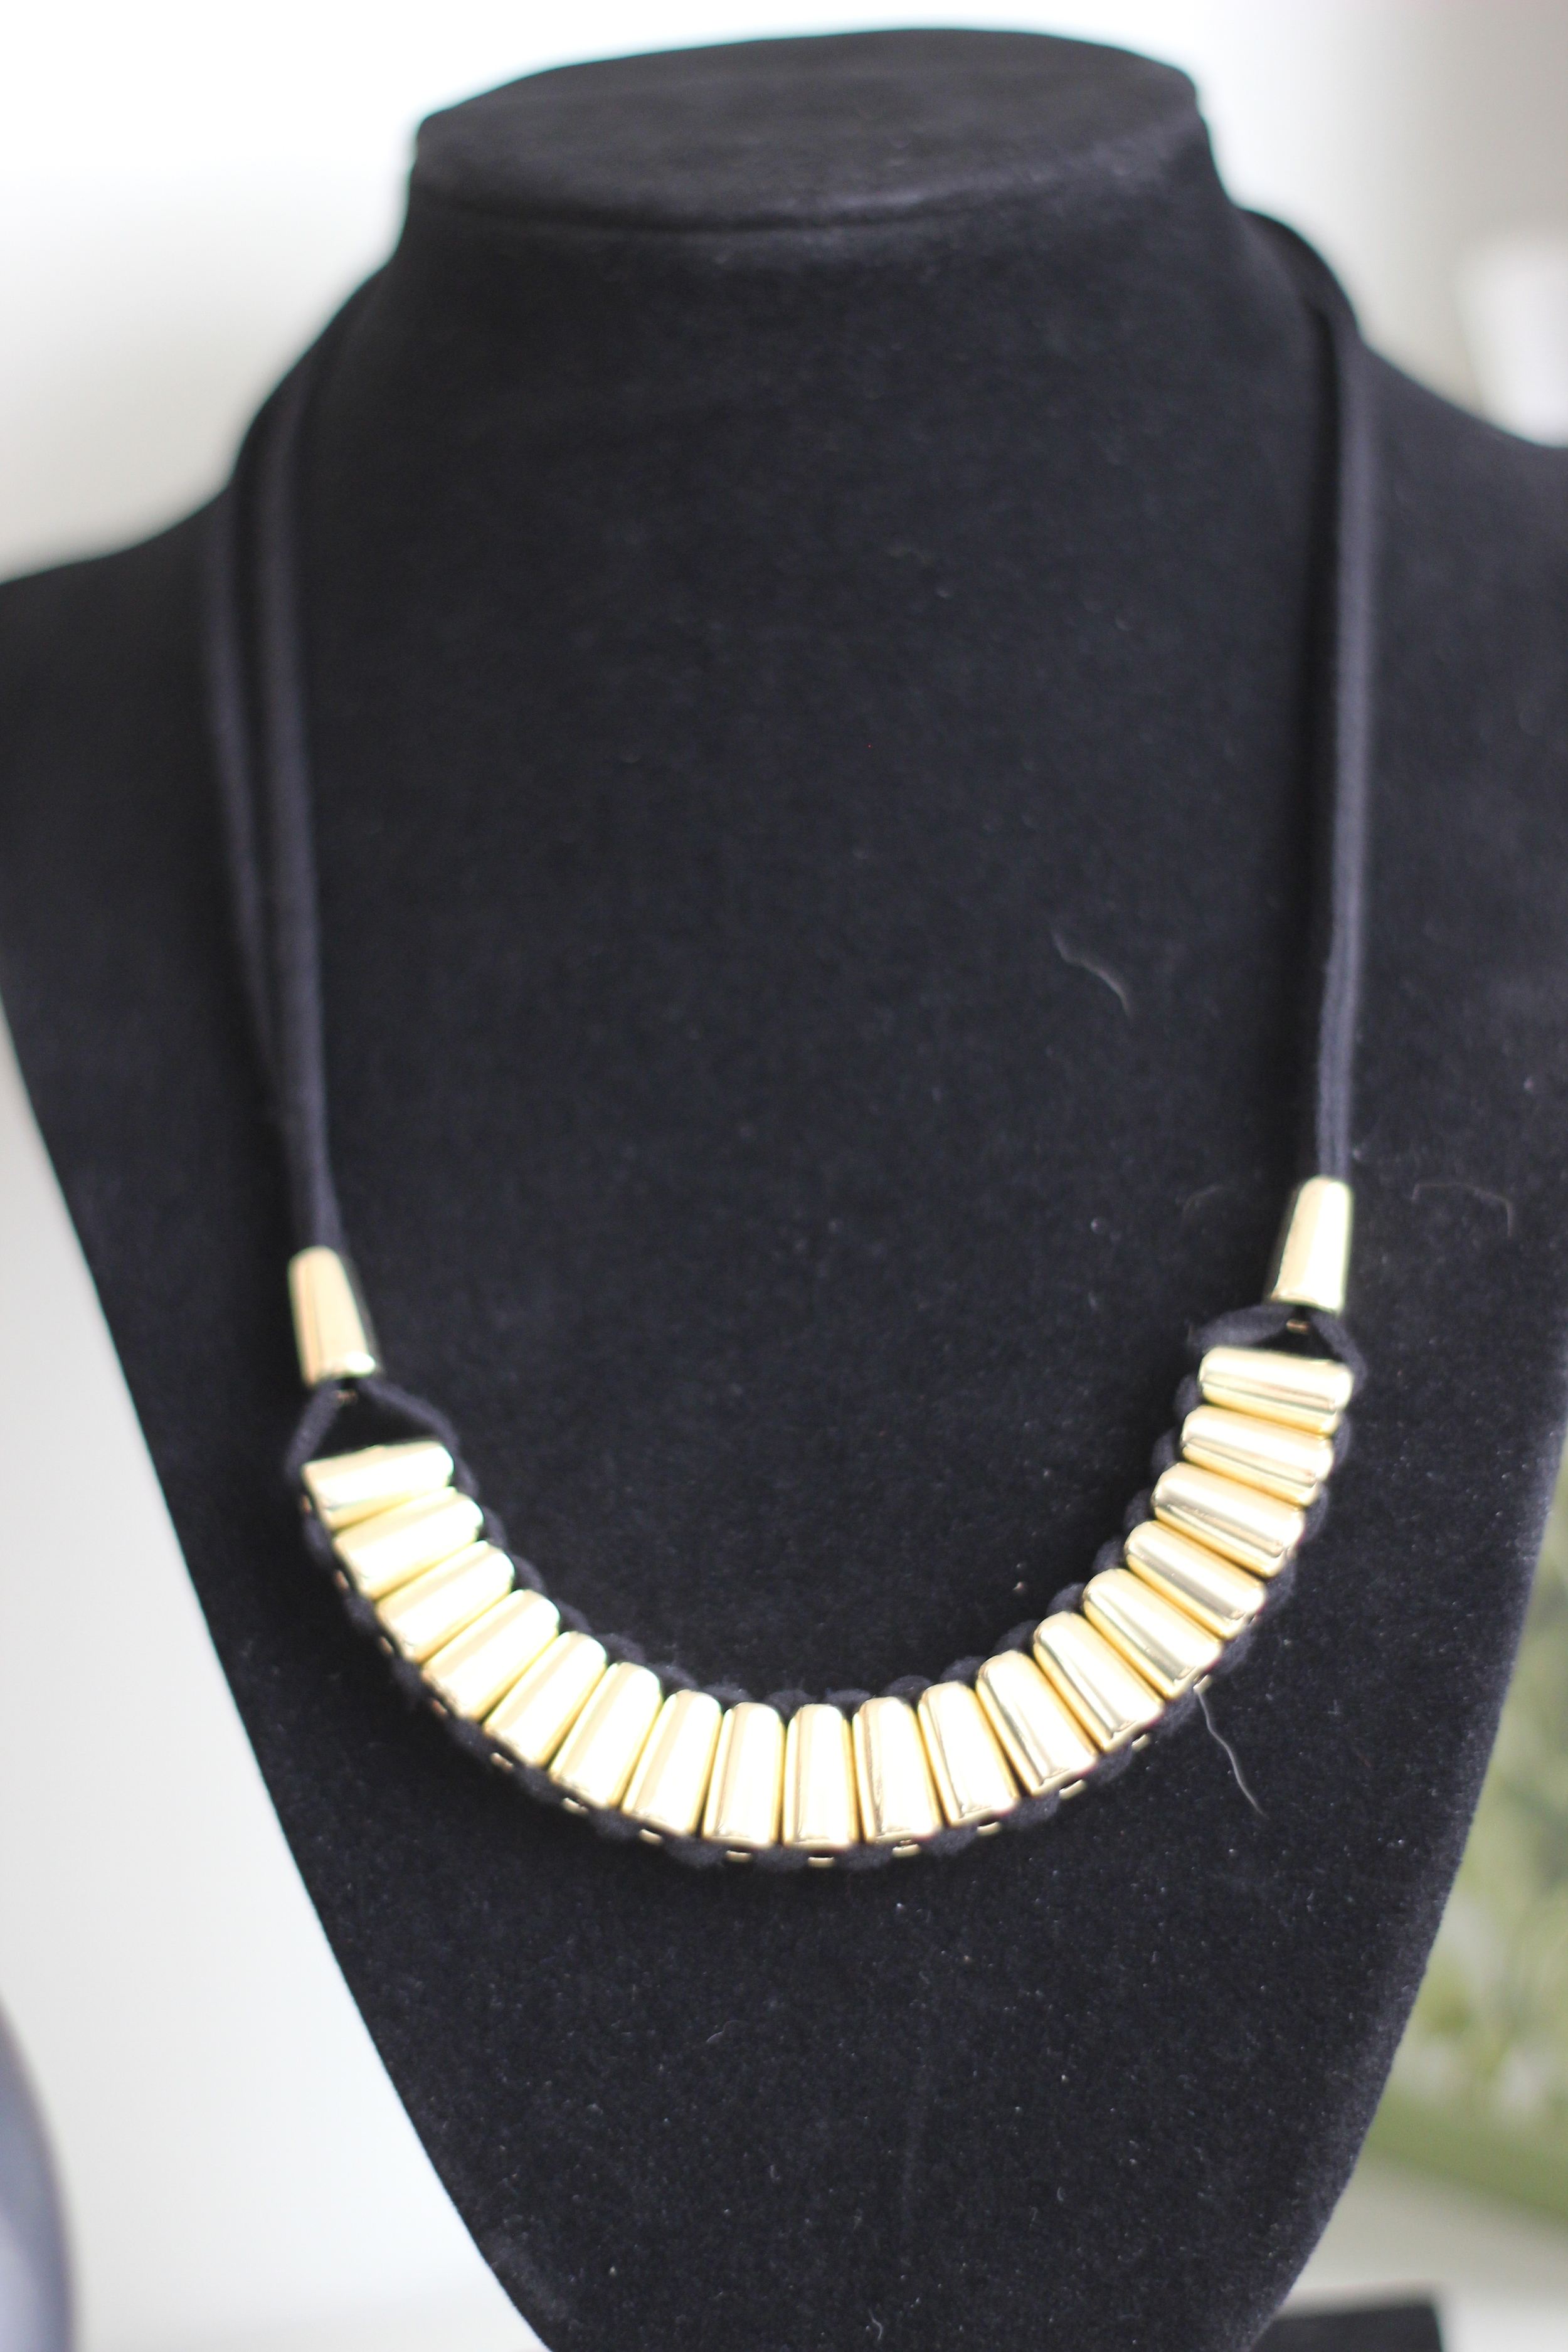 March Wantable Box- Bally Necklace Gold. I rally like this necklace and am happy to have it!